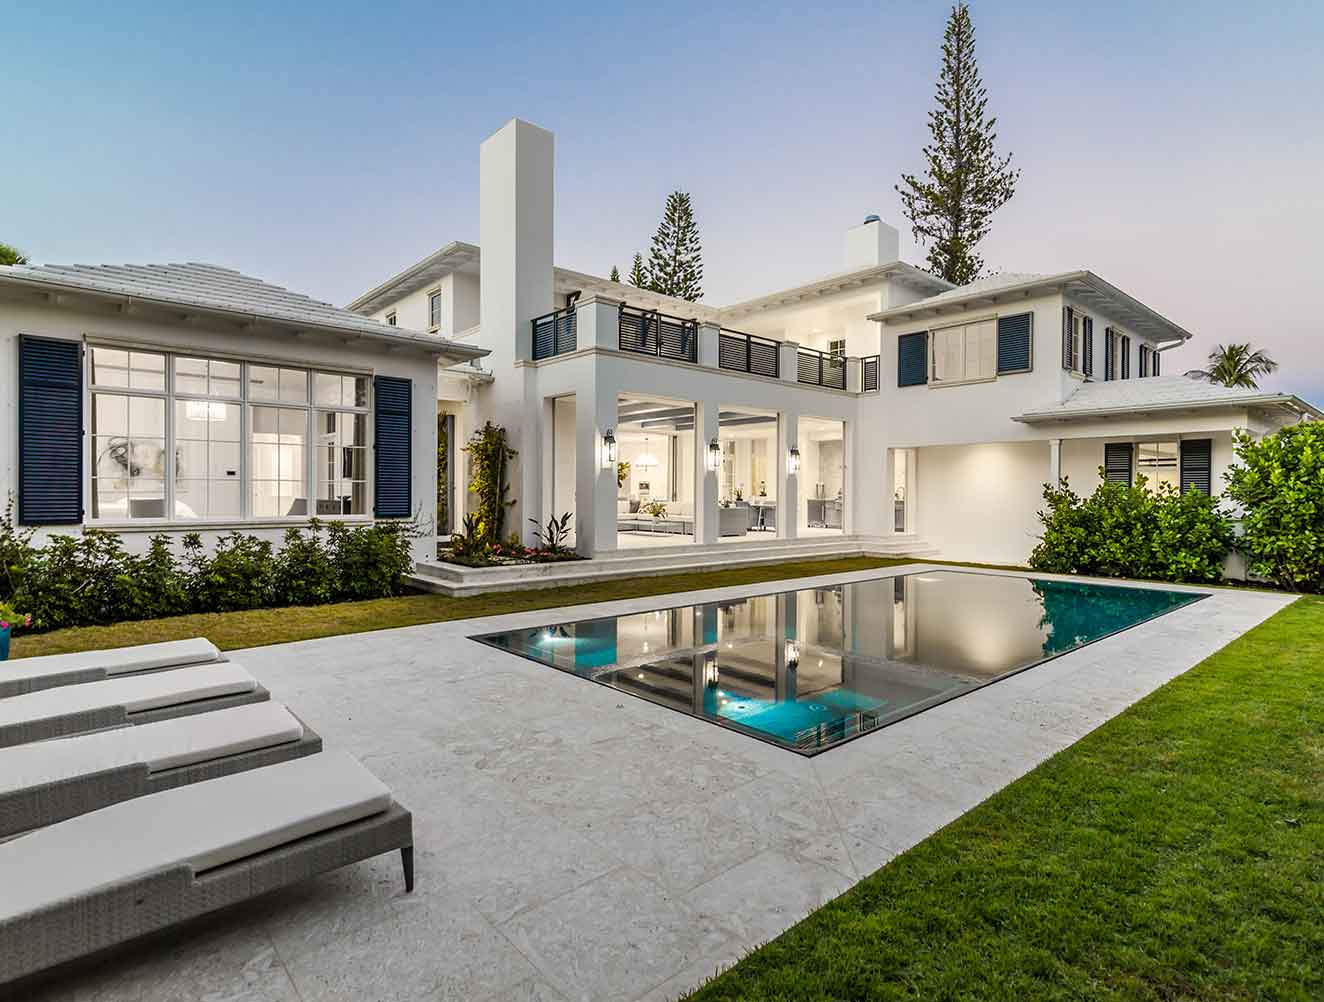 Exterior Pool at 10th Ave S. Residence in Naples Florida, single family home designed by Kukk Architecture & Design Naples Architecture Firm